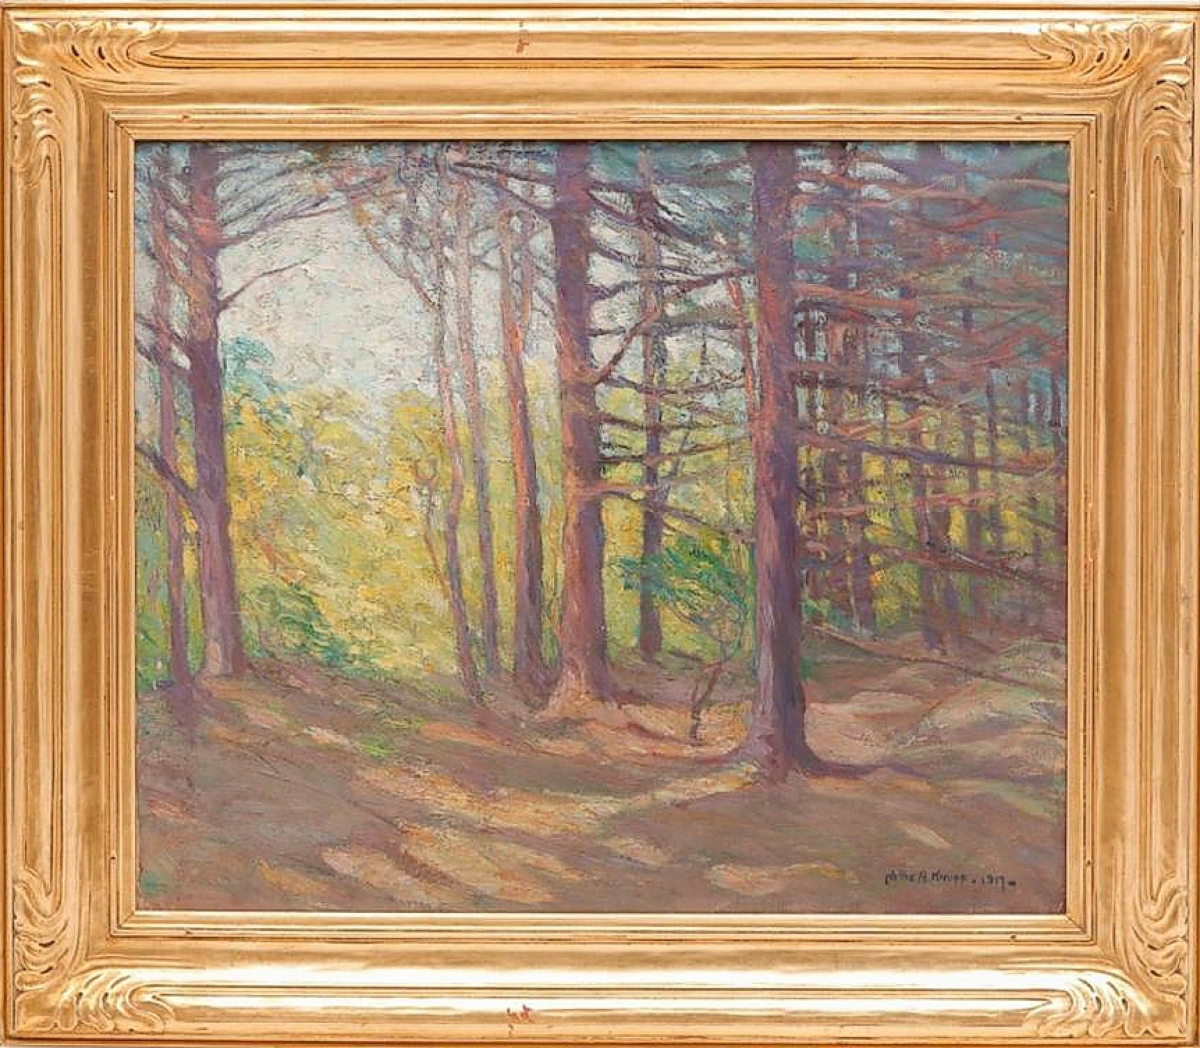 Selling for the third highest price in the sale at $6,600 was this painting of a wooded landscape by Nellie Augusta Knopf (Illinois/California, 1875-1962). Housed in a giltwood Newcomb Macklin frame, the picture was from the Gates Mills, Ohio, collection of Dr Floyd Loop and Dr Bernadine Healy, who had acquired it at a Garth's sale in 2015. It is staying in the Midwest. ($6/8,000).